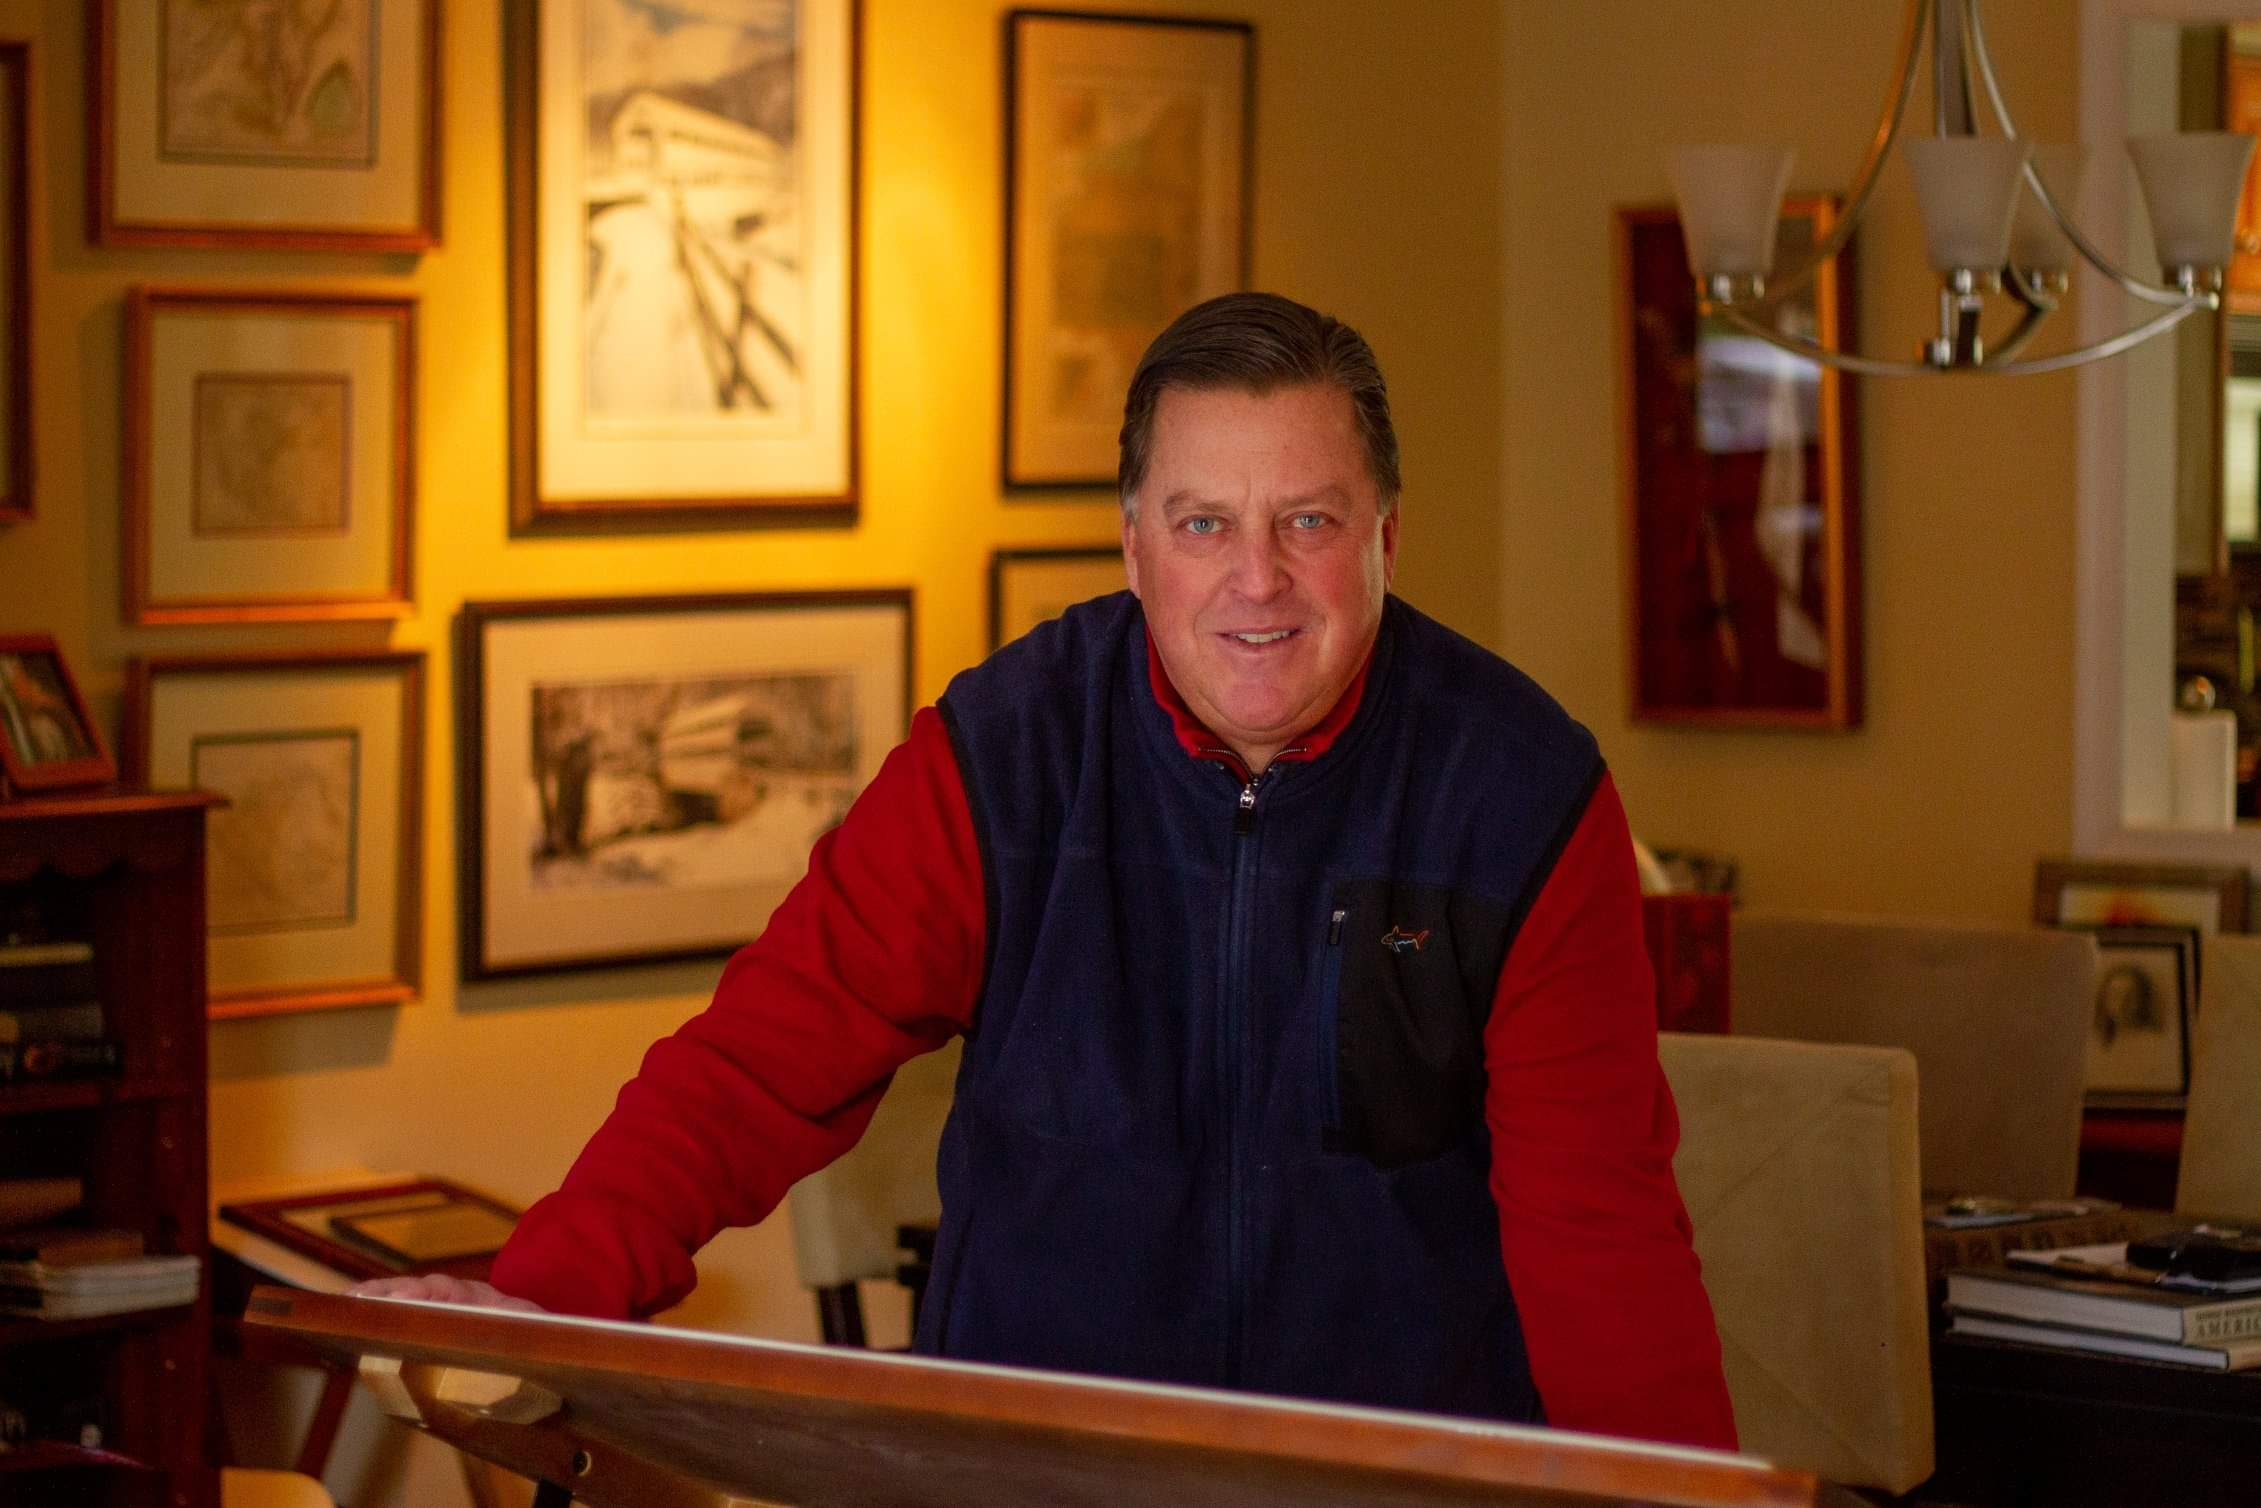 Chesterbrook Man Shares His Passion for Antique Maps, Farm and Railroad Atlases